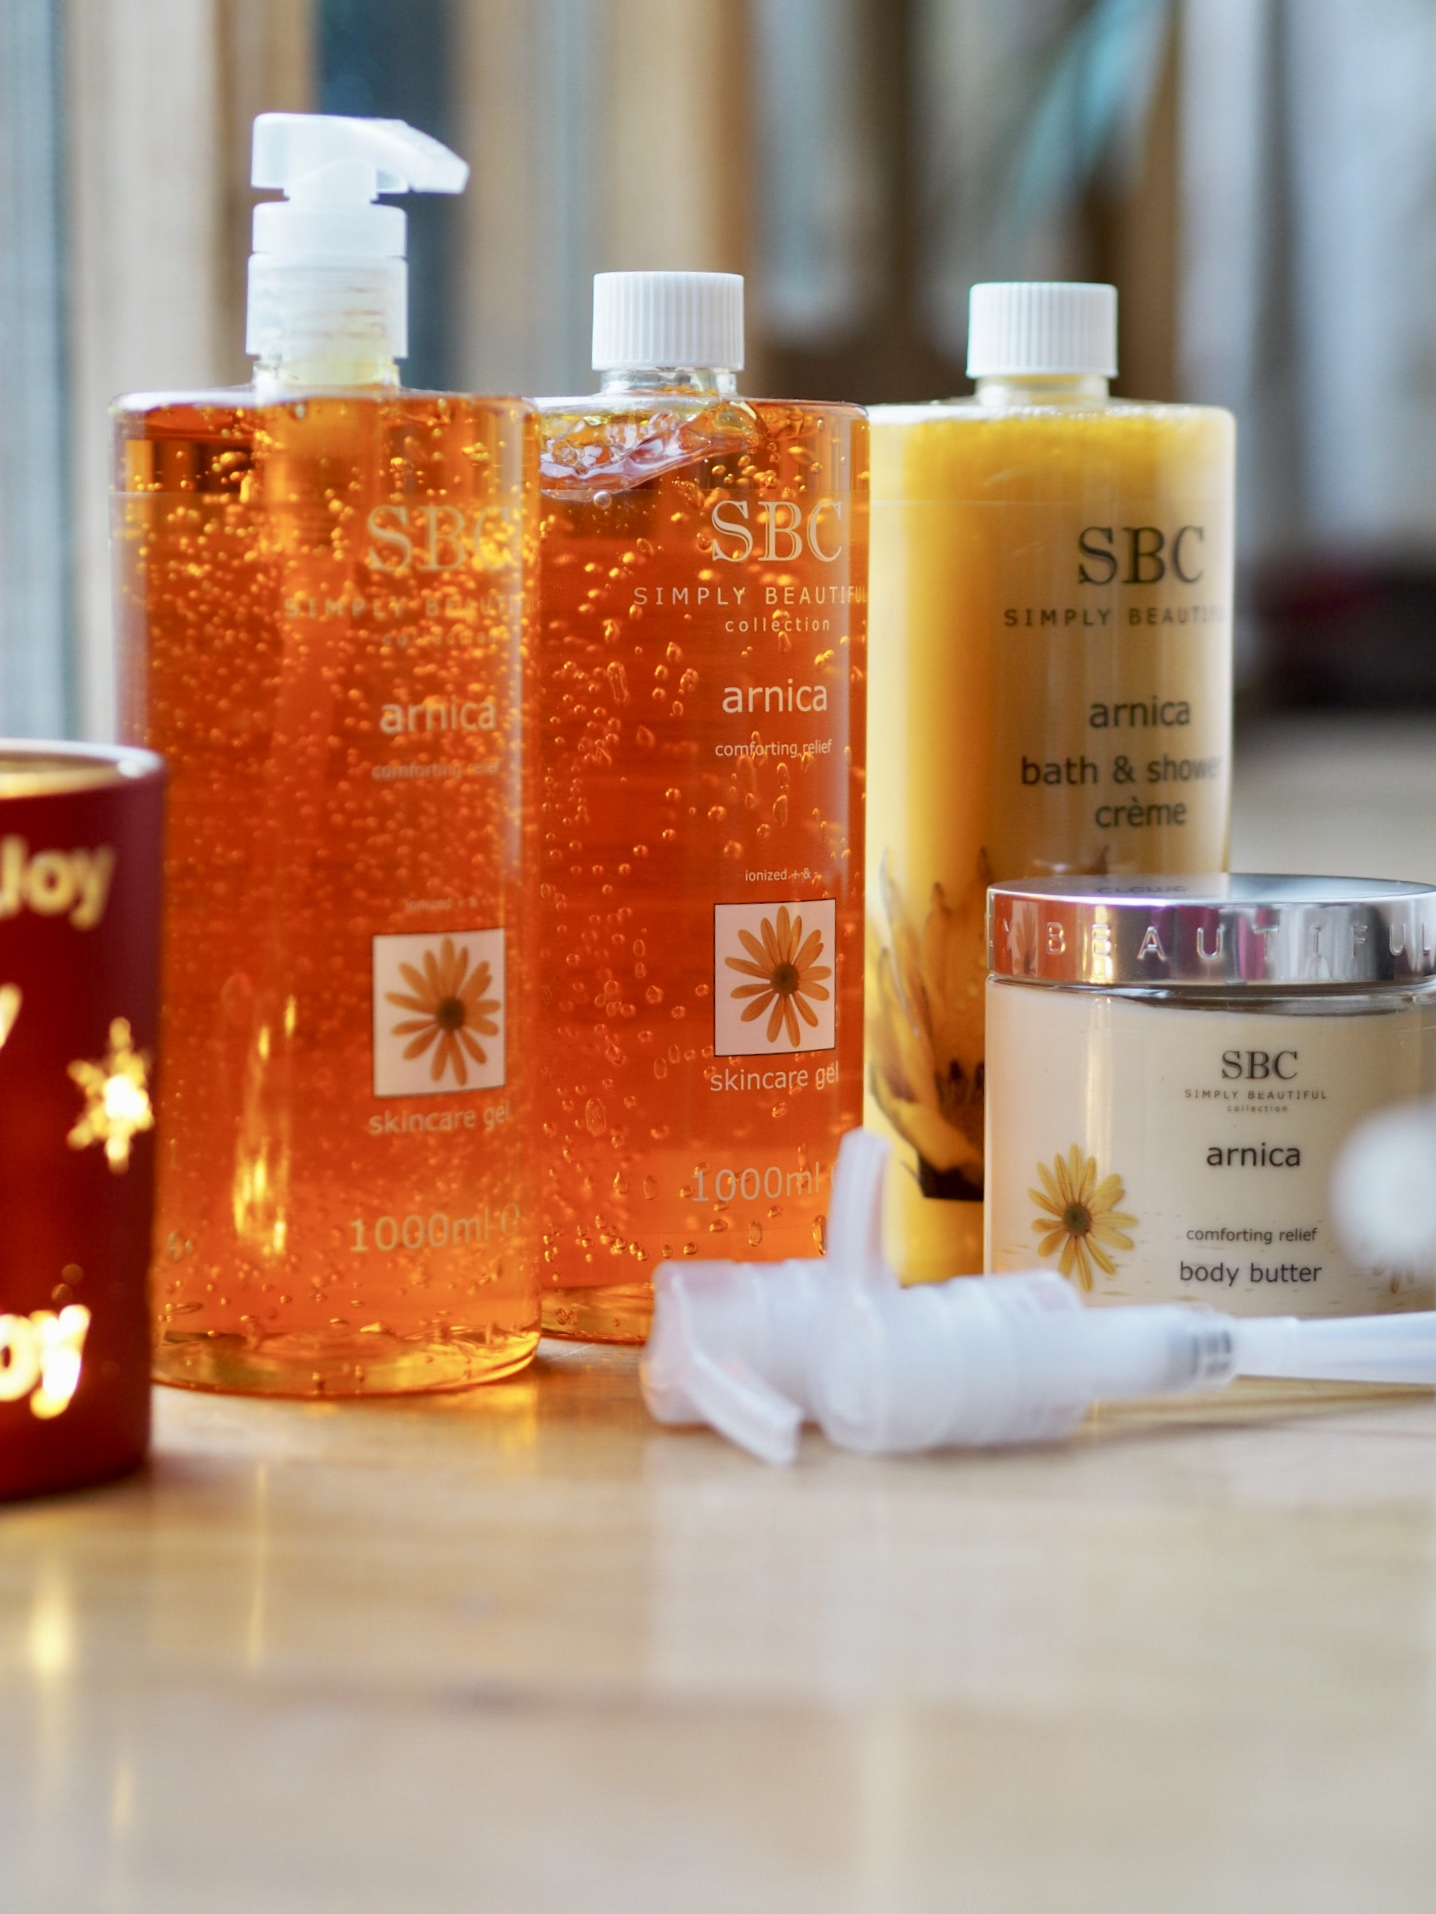 SBC arnica collection QVC TSV